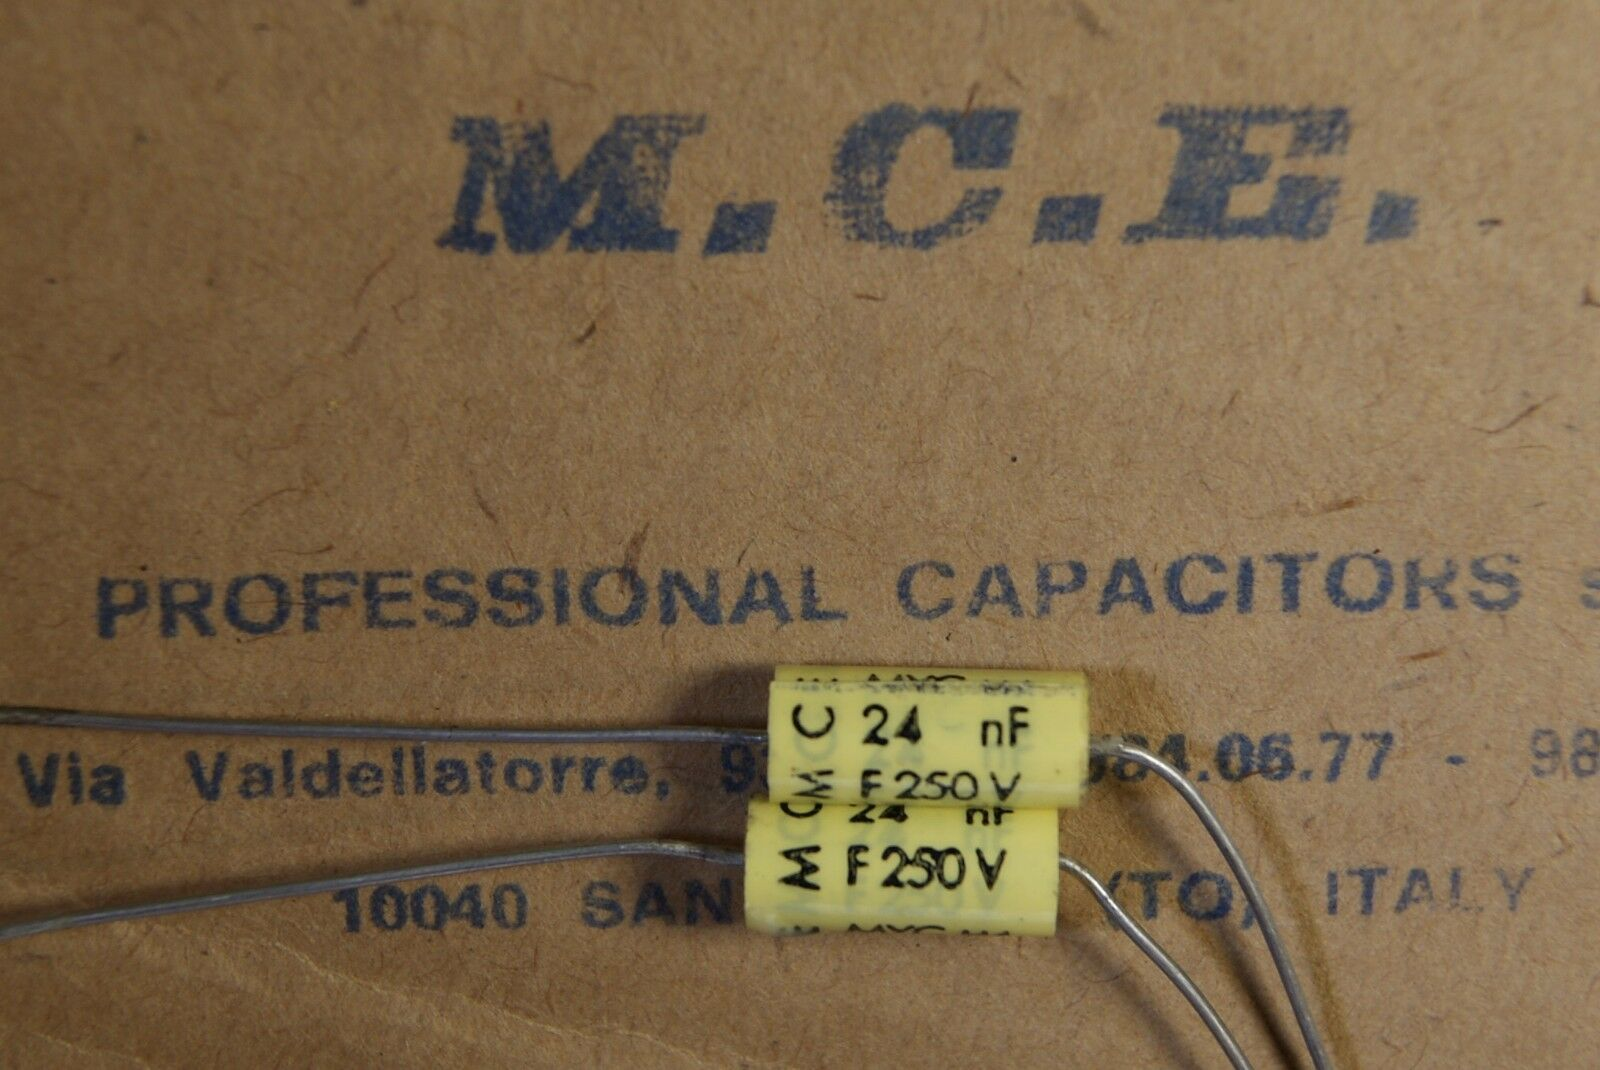 2.2uf  WIMA ROE MCE SIEMENS 250pcs KIT assortment capacitor MKP MKT 2.2nf